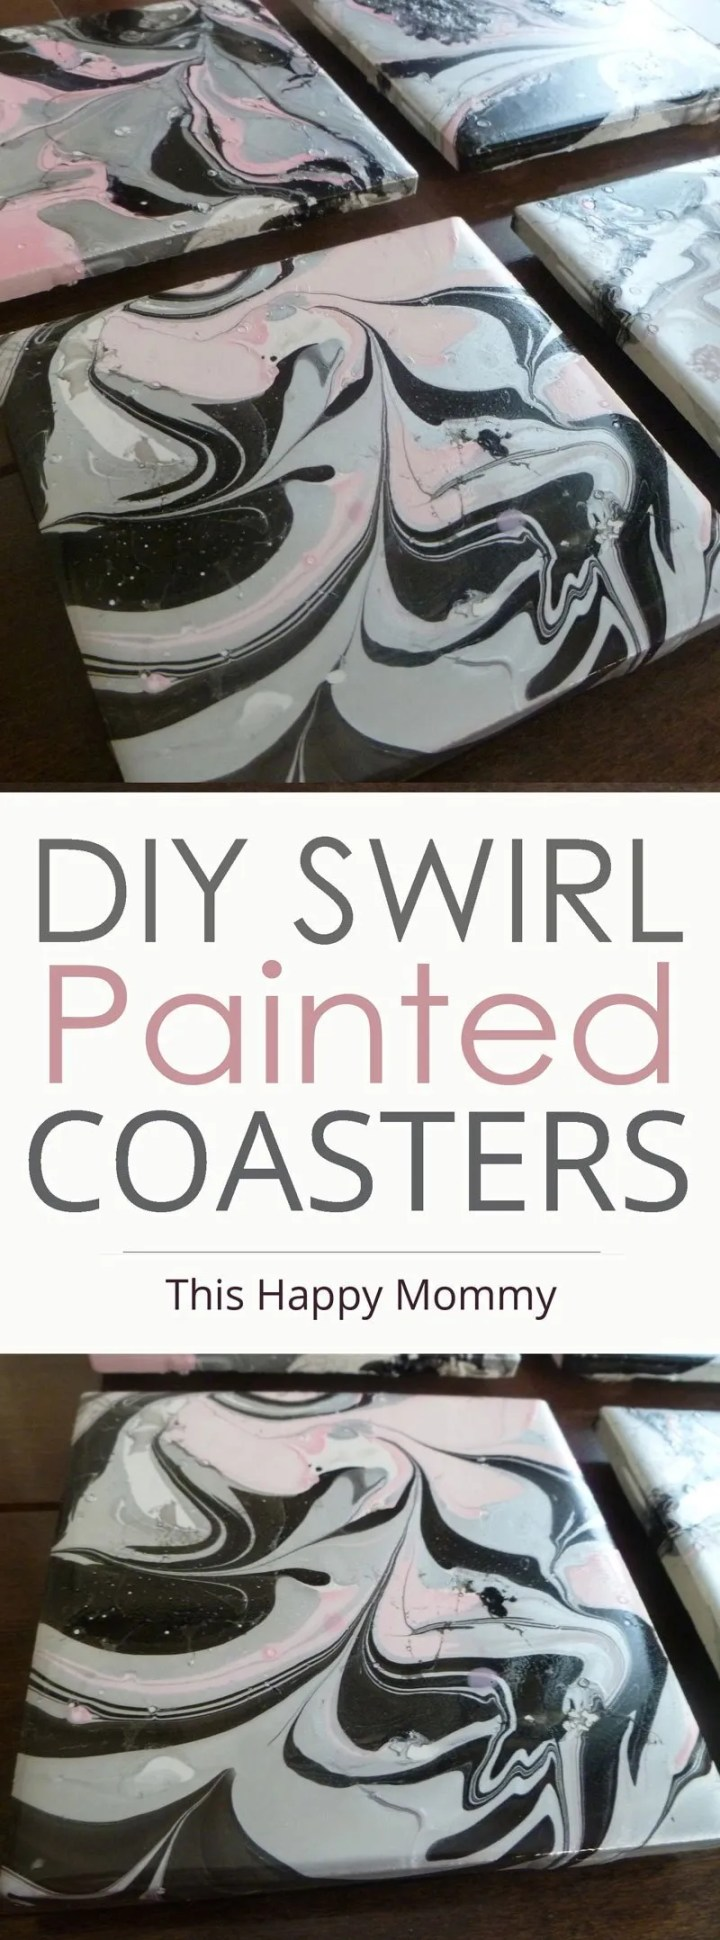 DIY Swirl Painted Coasters -- With a swirl painted design, these DIY coasters are decorated with nail polish. | Cheap and Easy DIY Home Decor | Easy DIY gifts | Cheap DIY gifts | Unique DIY gifts | Creative DIY Gifts | DIY Crafts Gifts | #diy #gifts #crafts #howto #homedecor | thishappymommy.com